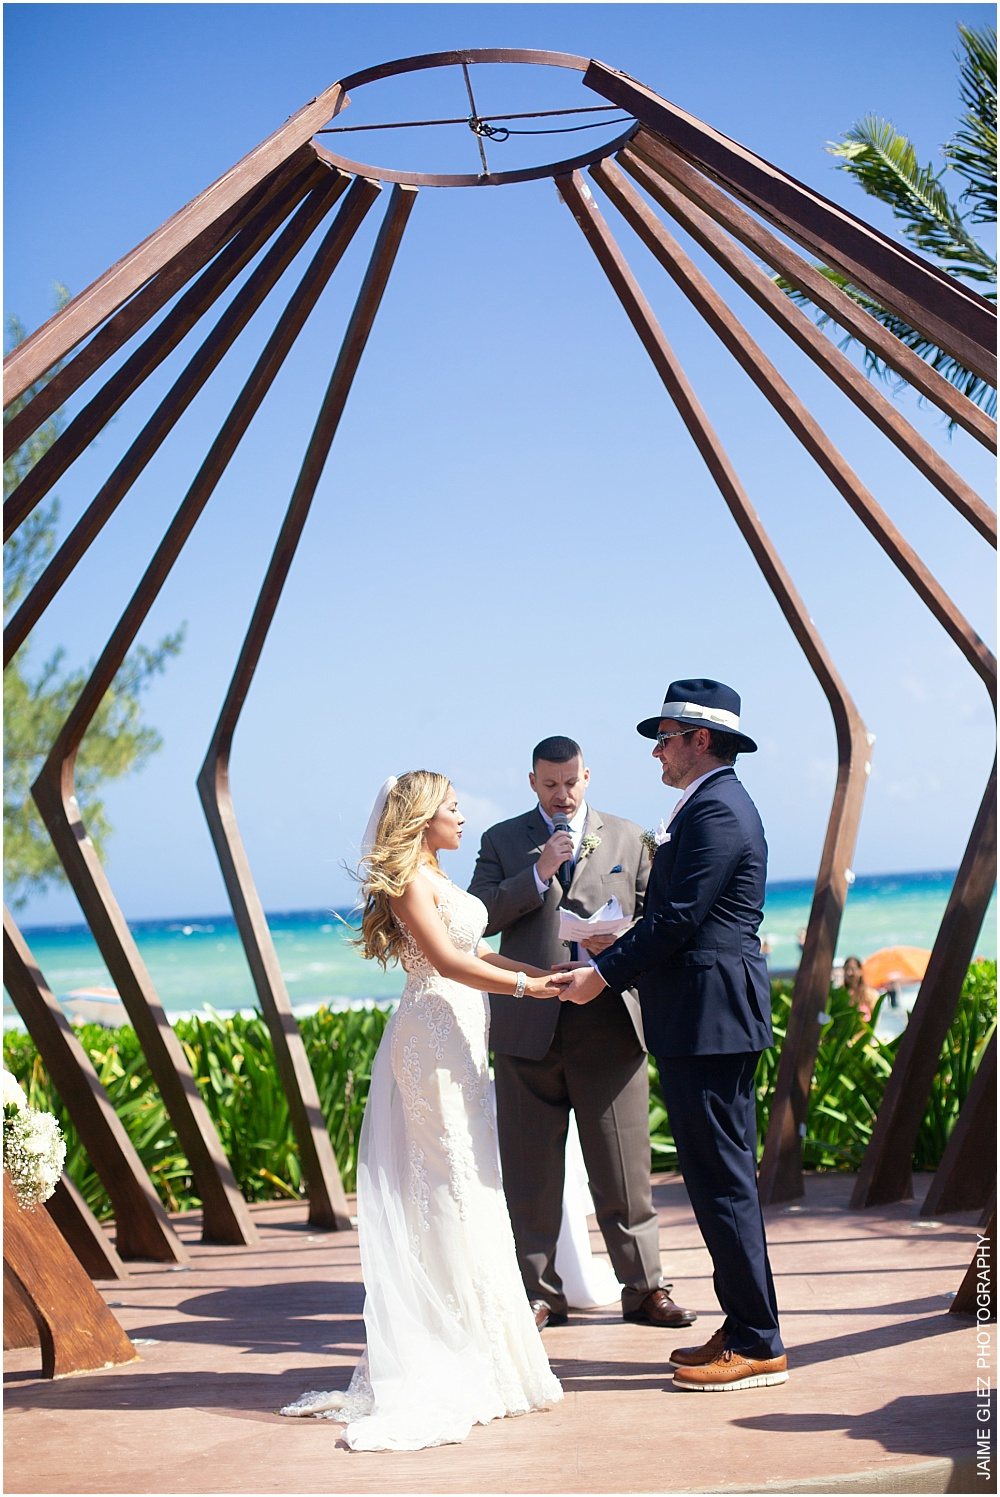 Couple exchanging vows in the perfect location!